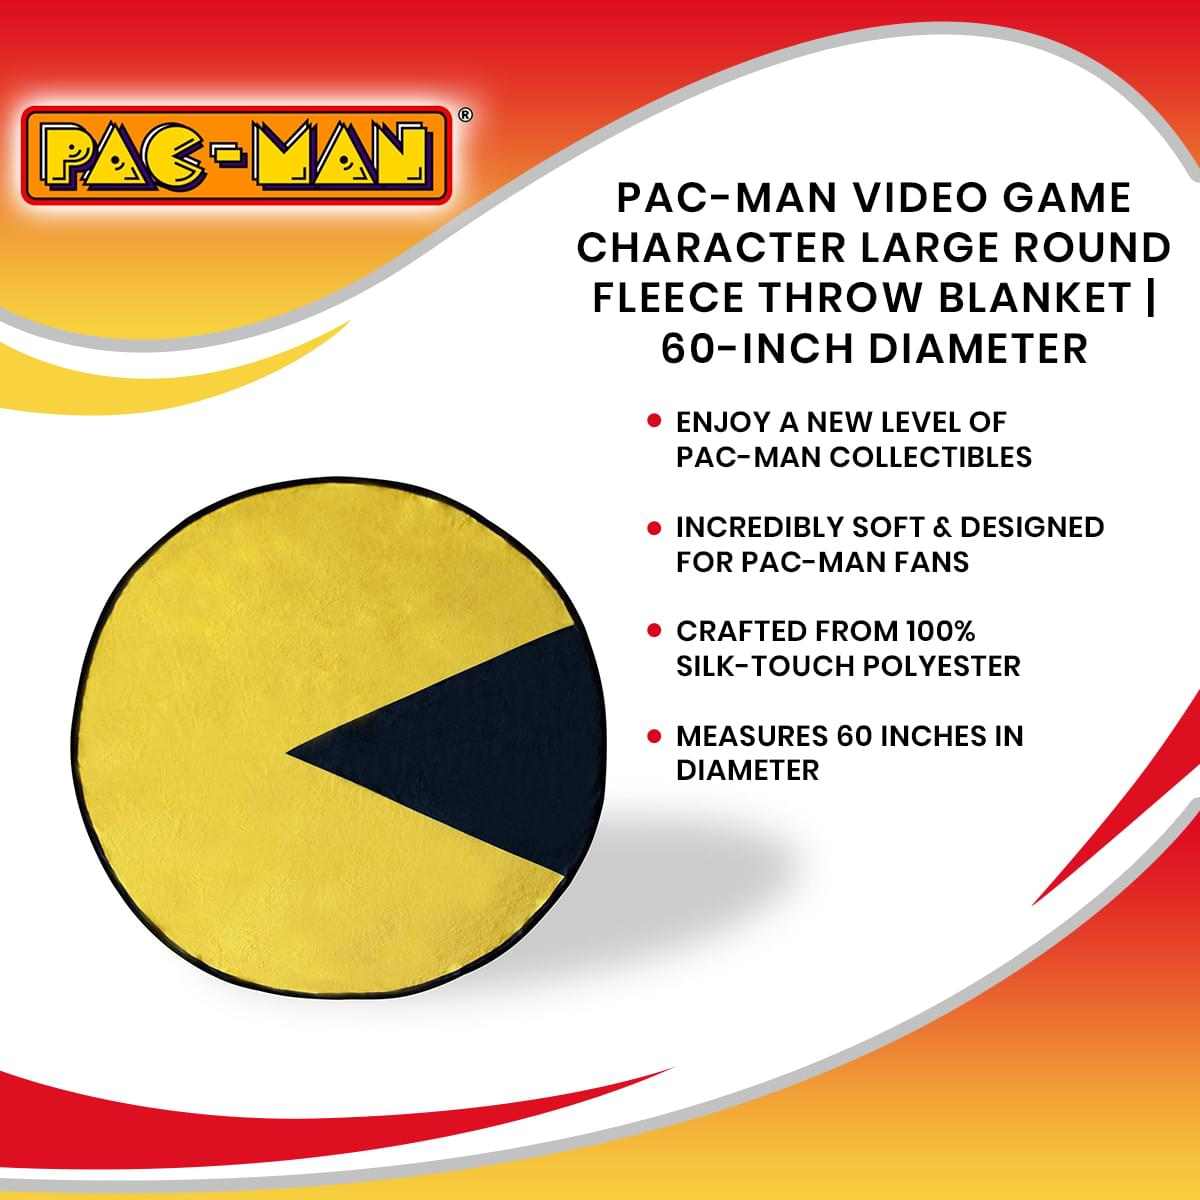 Pac-Man Video Game Character Large Round Fleece Throw Blanket | 60-Inch Diameter